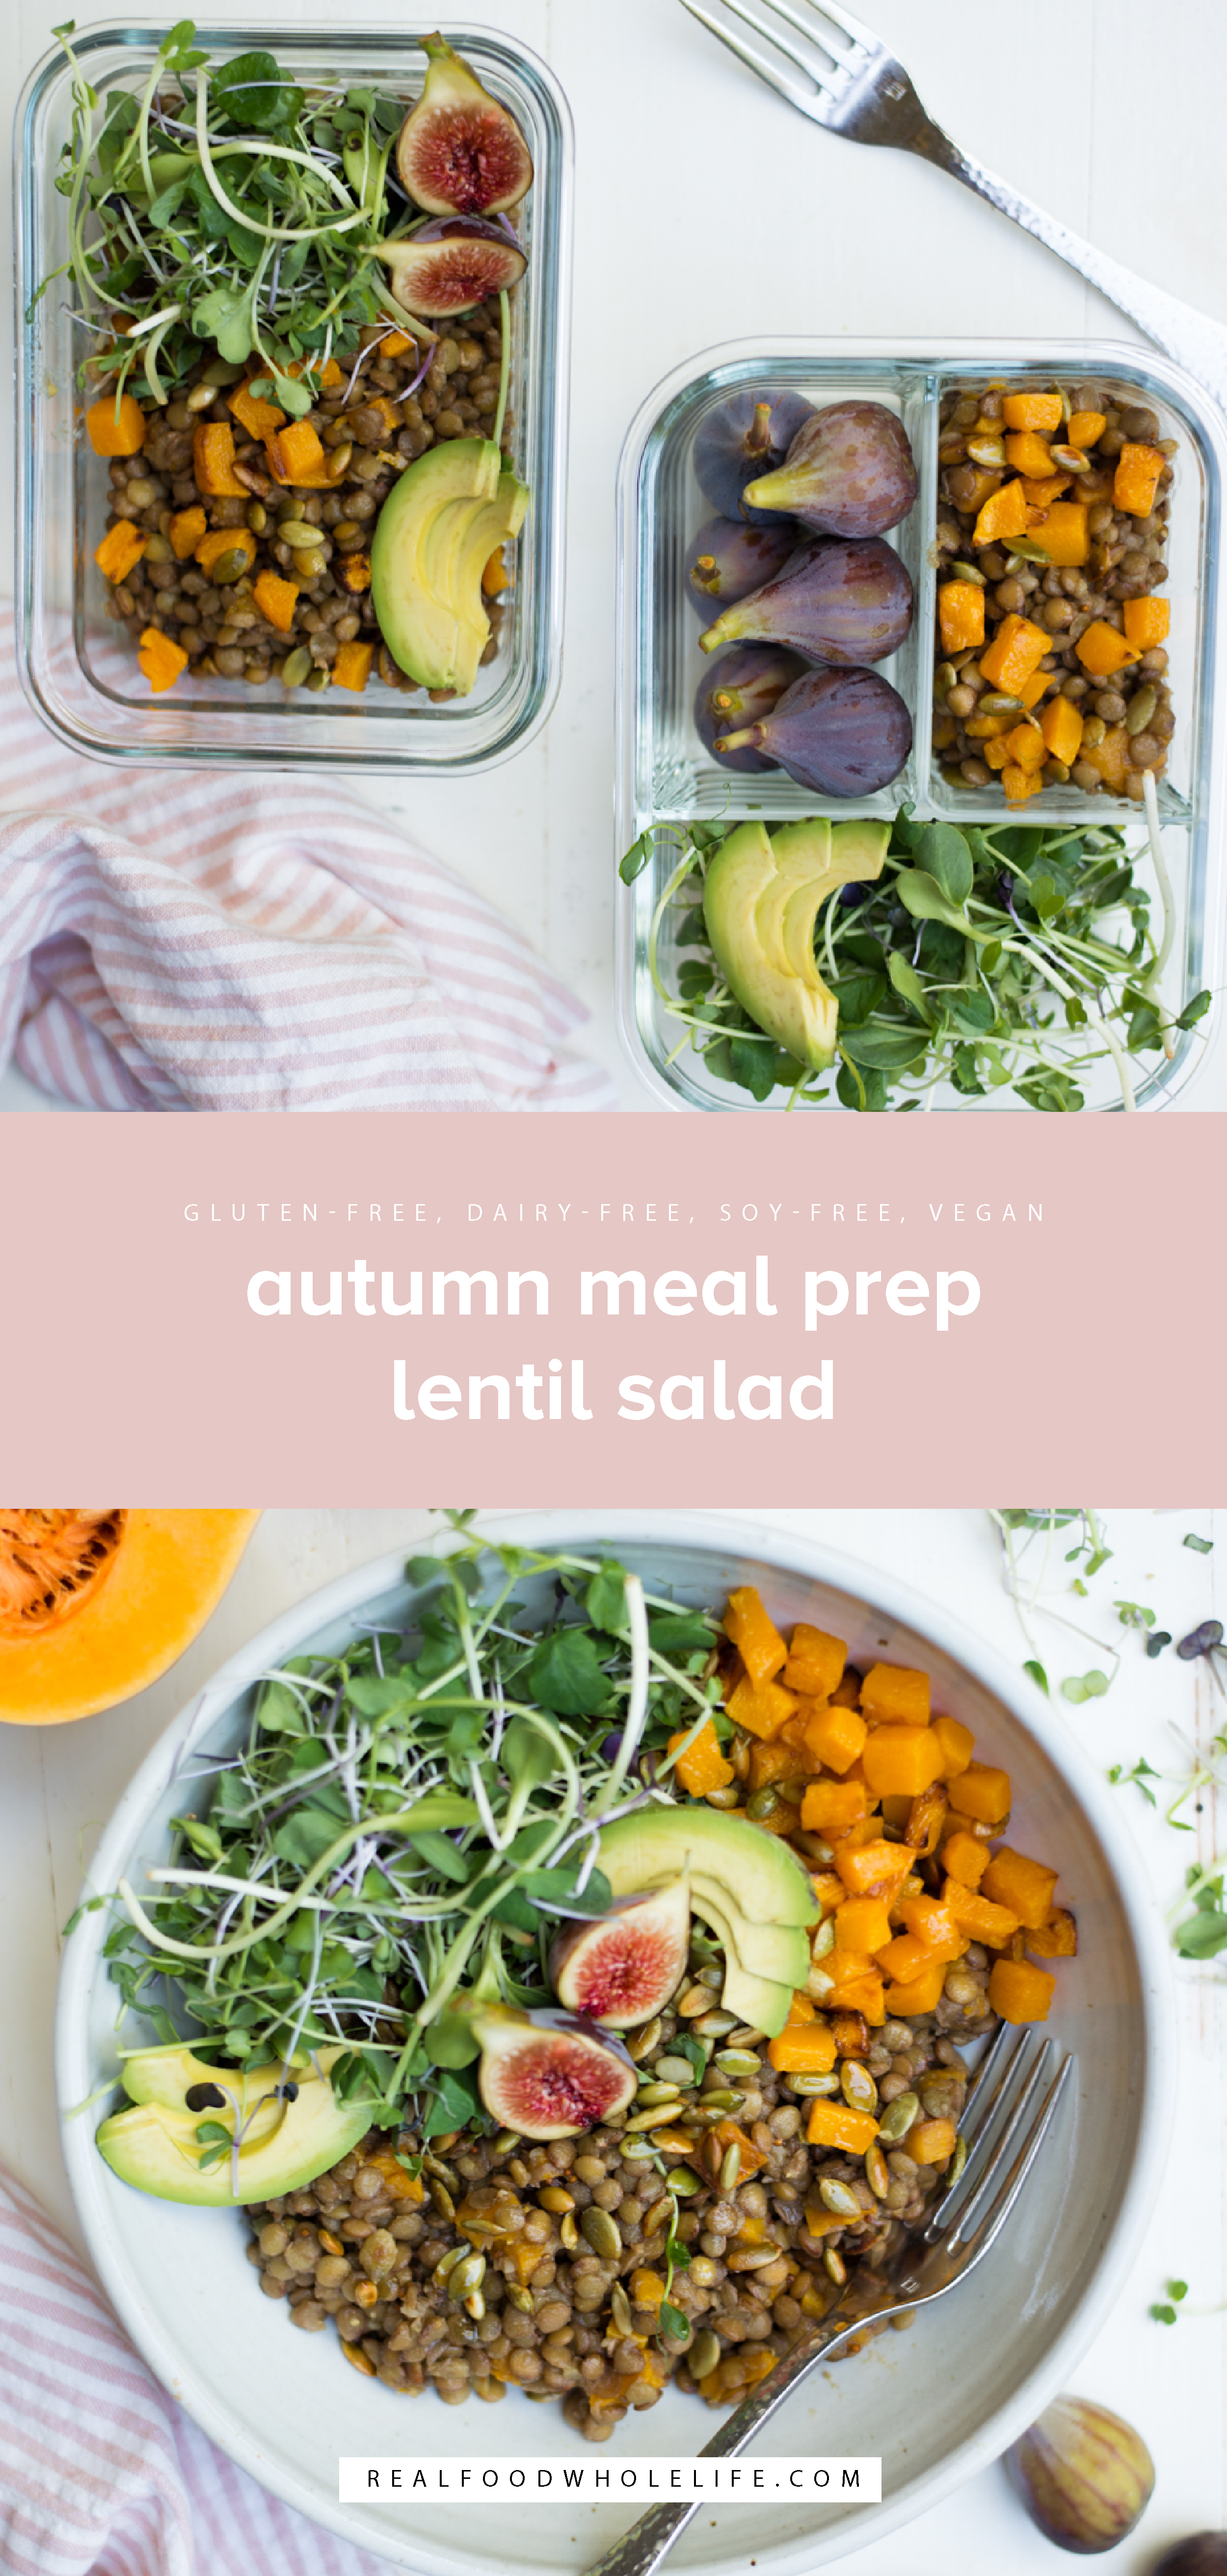 Autumn Meal Prep Lentil Salad is packed with nutrition and full of beautiful fall flavors. Perfect to prep-ahead and take for lunch, or enjoy as a side dish anytime. A gluten-free, dairy-free, vegetarian, vegan recipe. #realfoodwholeliferecipe #recipe #dinner #glutenfree #dairyfree #healthy #healthyrecipe #easyrecipe #quickrecipe #eggfree #mayofree #soyfree #vegetarian #vegan #mealprep #mealplanning #lunch #makeahead